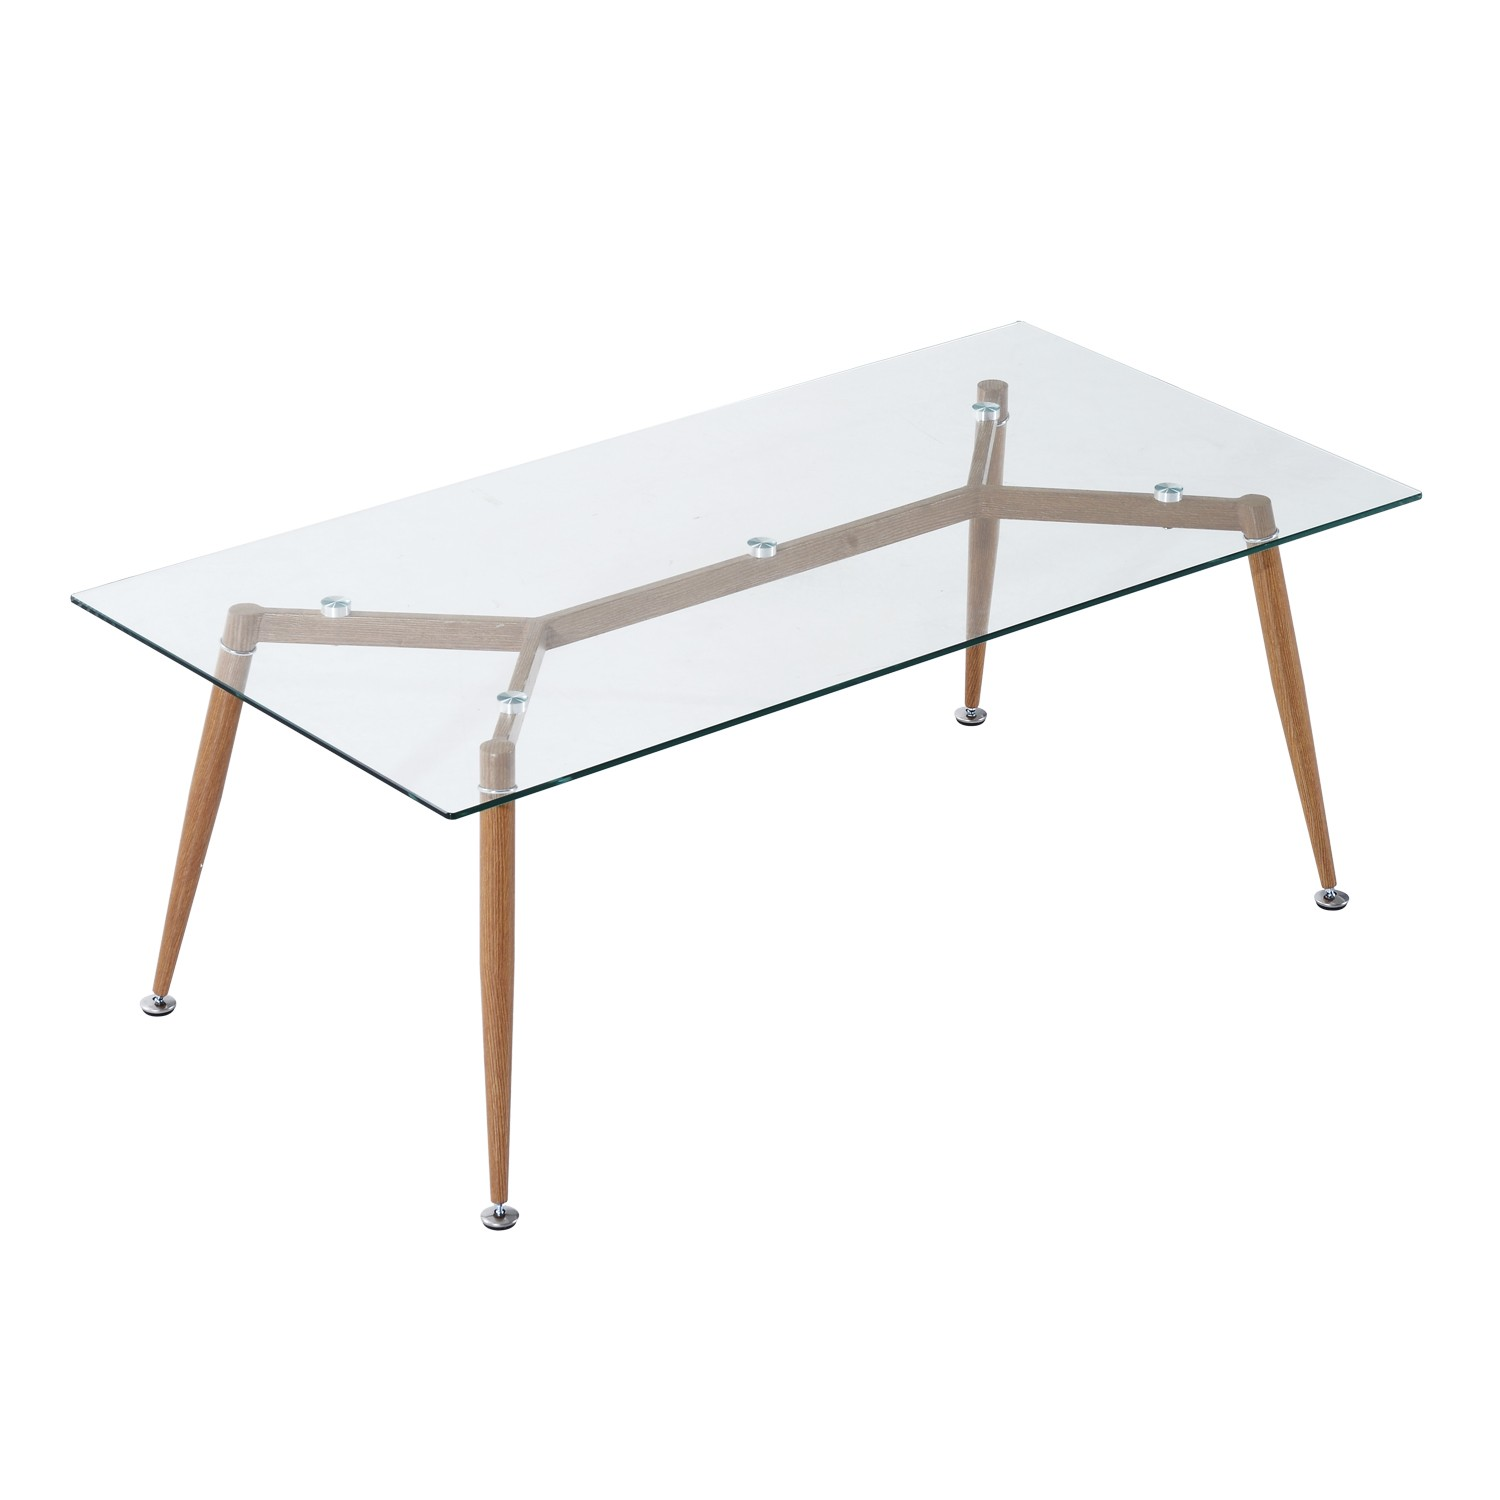 tables furniture home goods idroidwar god accent homcom mid century modern tempered glass retro coffee corner table high frame mosaic chair hallway fall linens wooden bedside